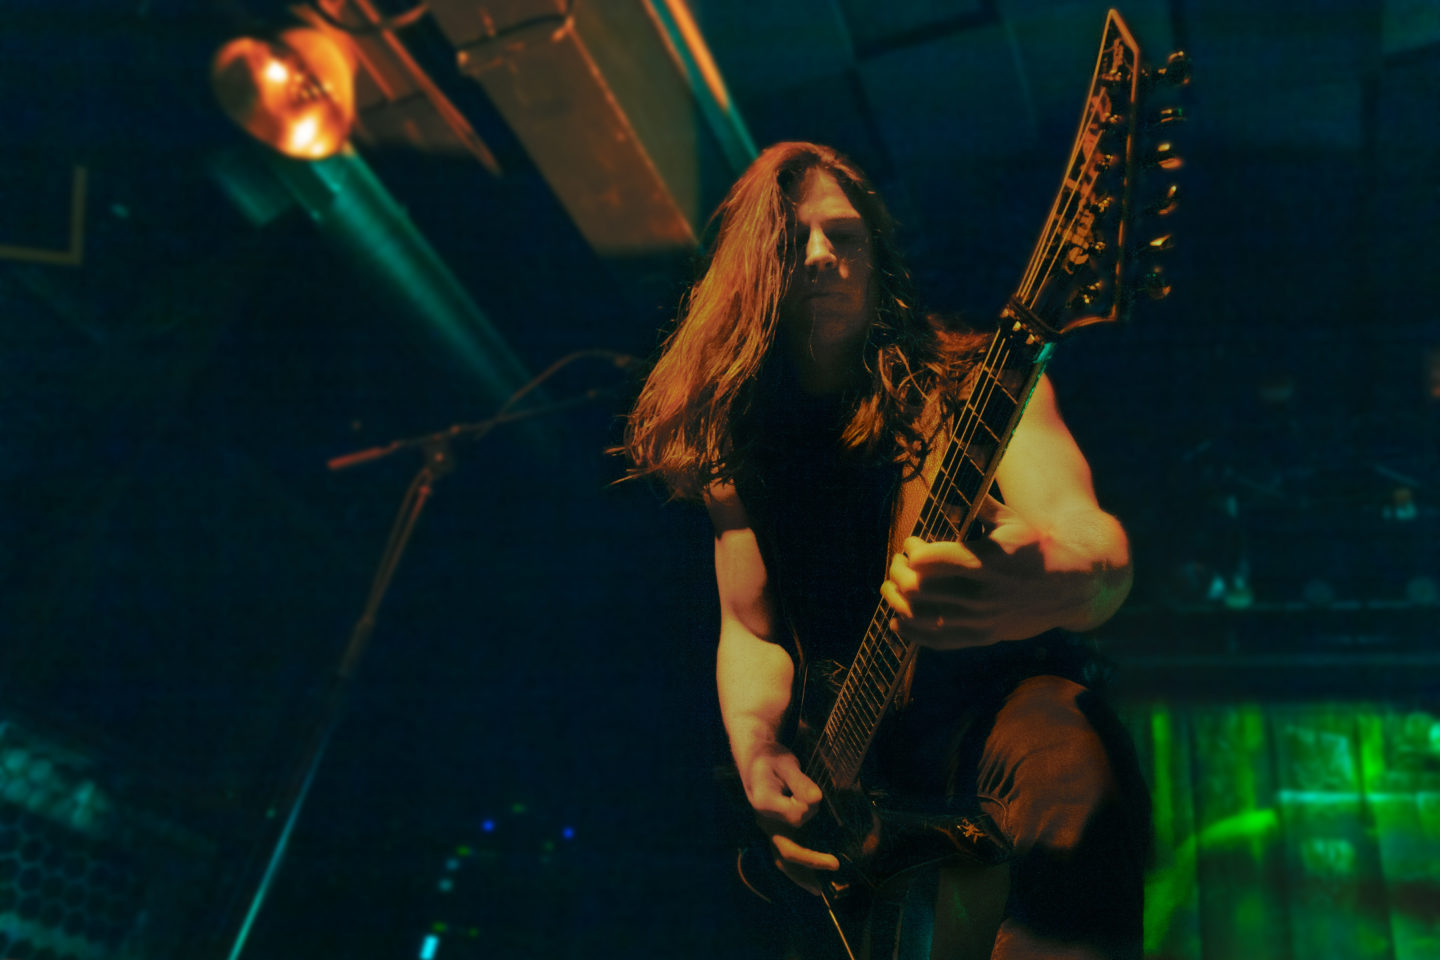 The Black Dahlia Murder at Concord Music Hall by Sanchi Engineer